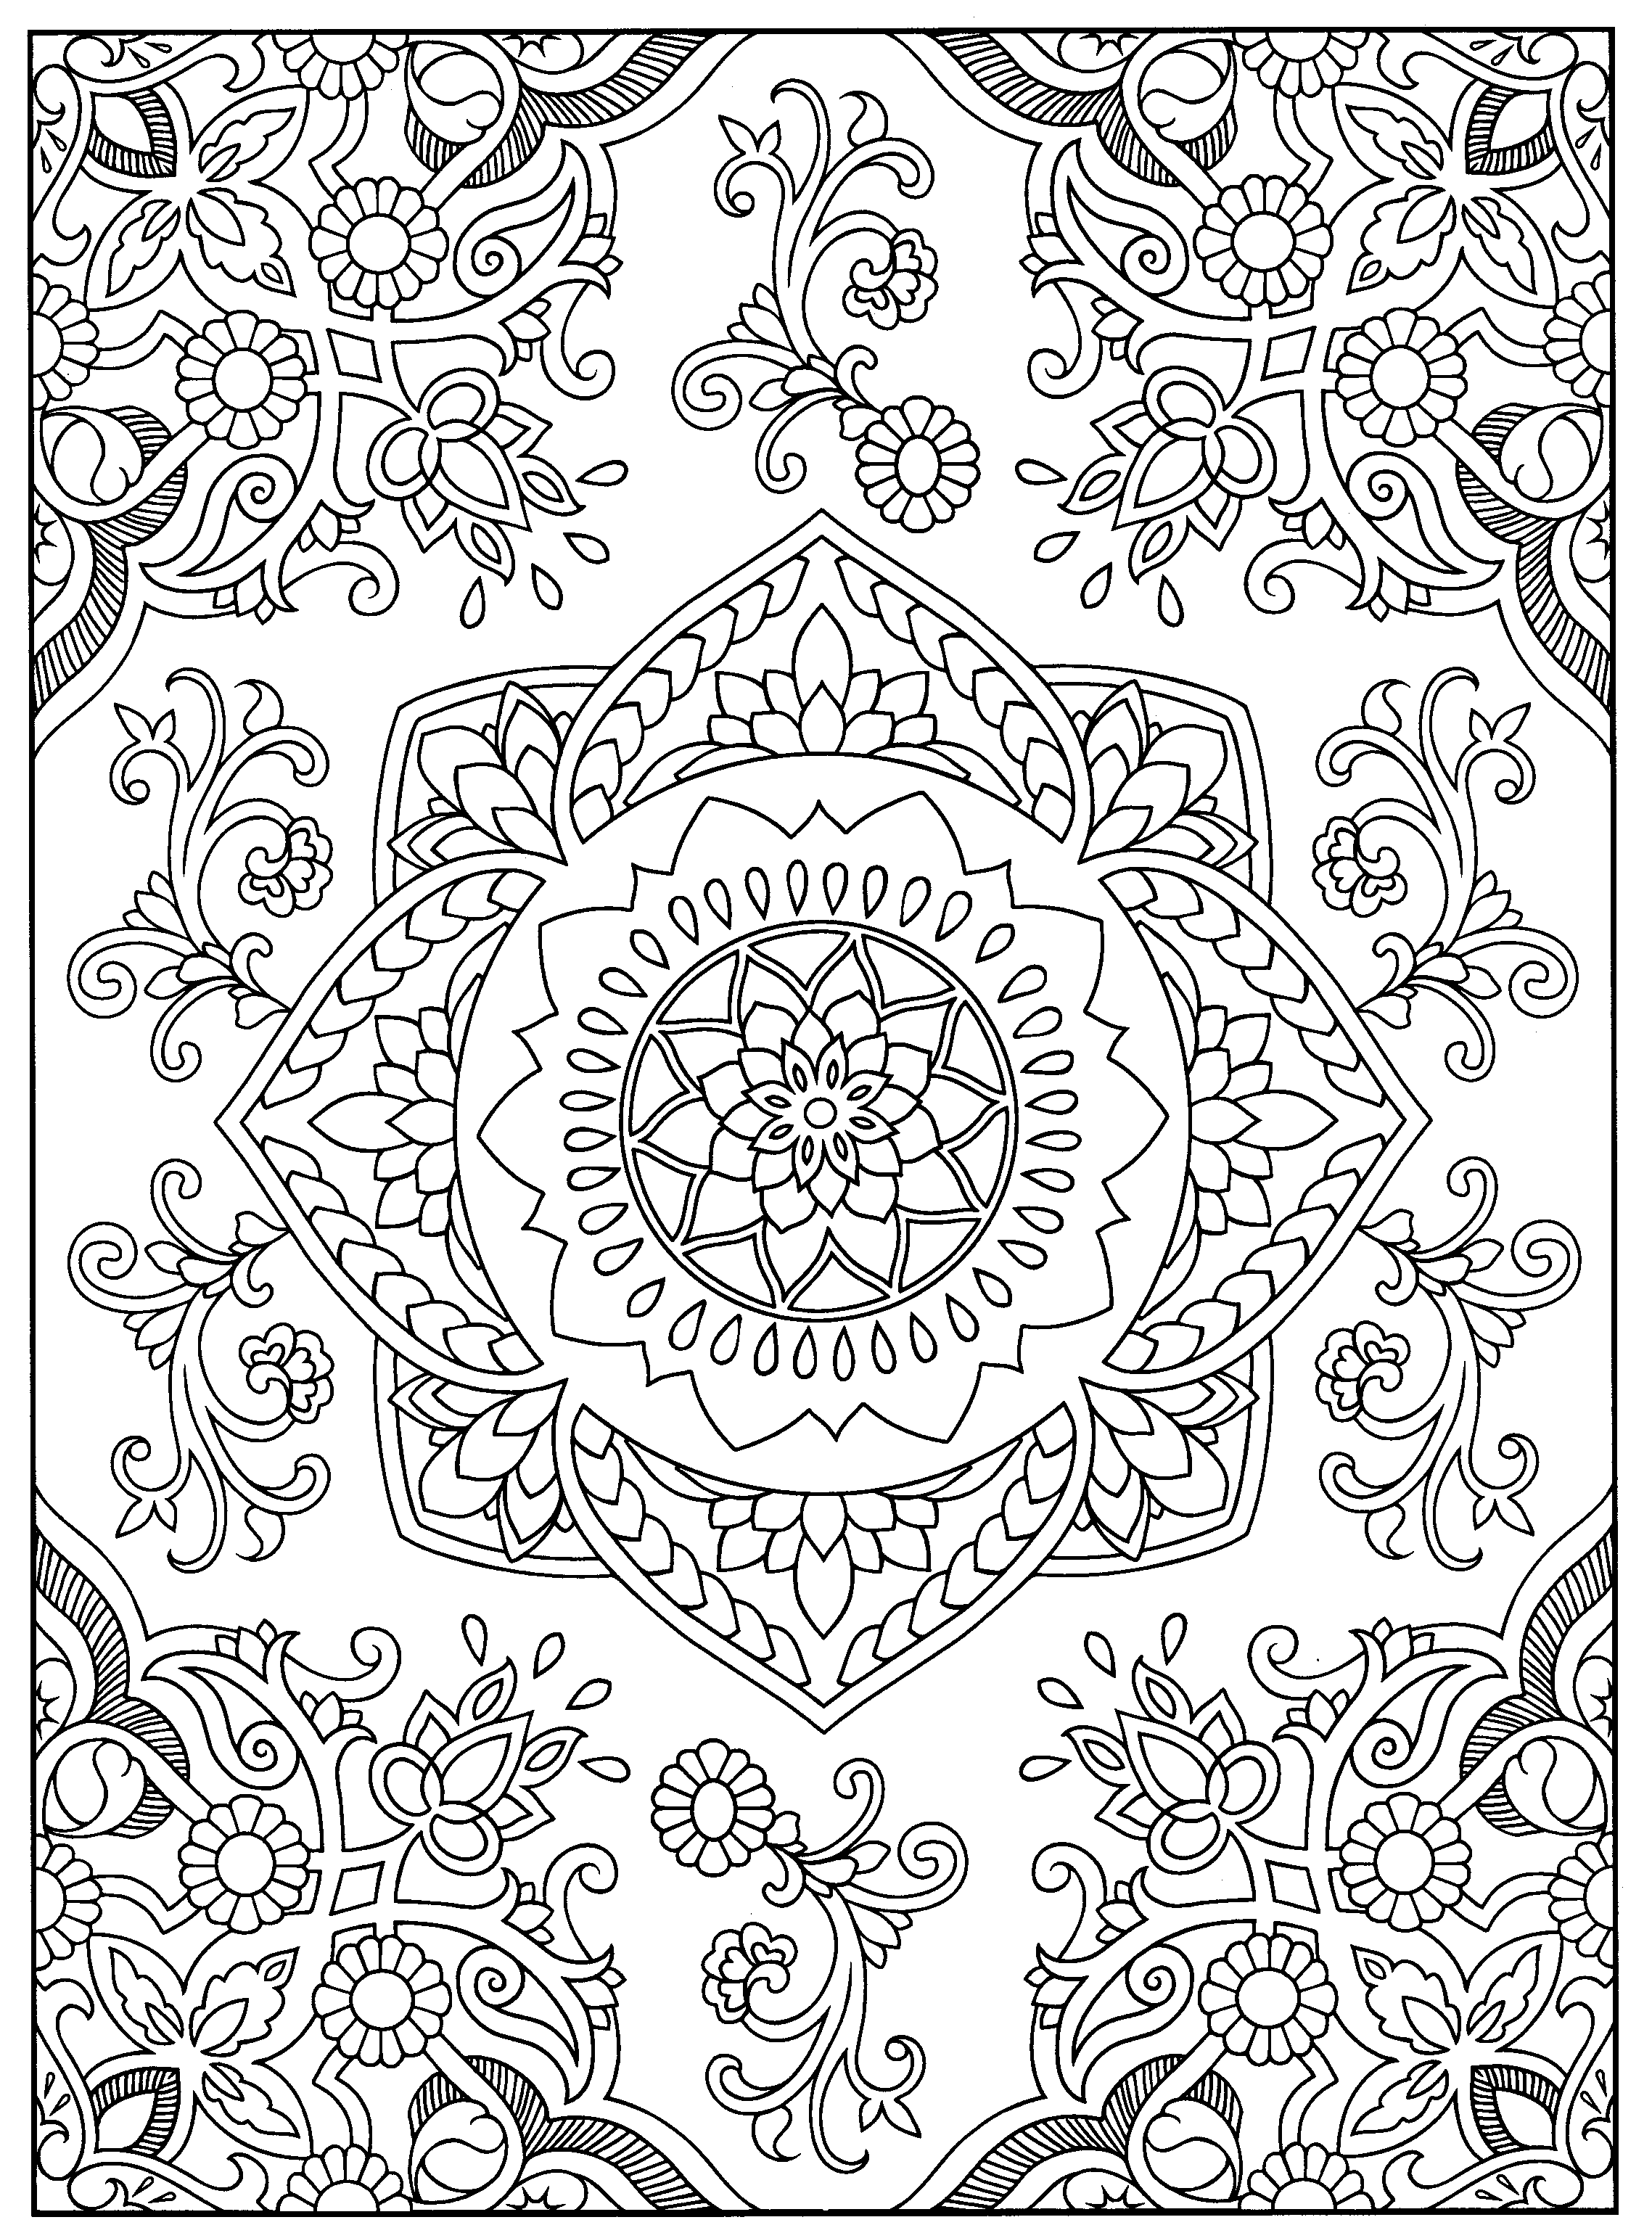 A Favorite From Mehndi Designs By Marty Noble Coloring Pages Henna Designs Doodle Art Posters